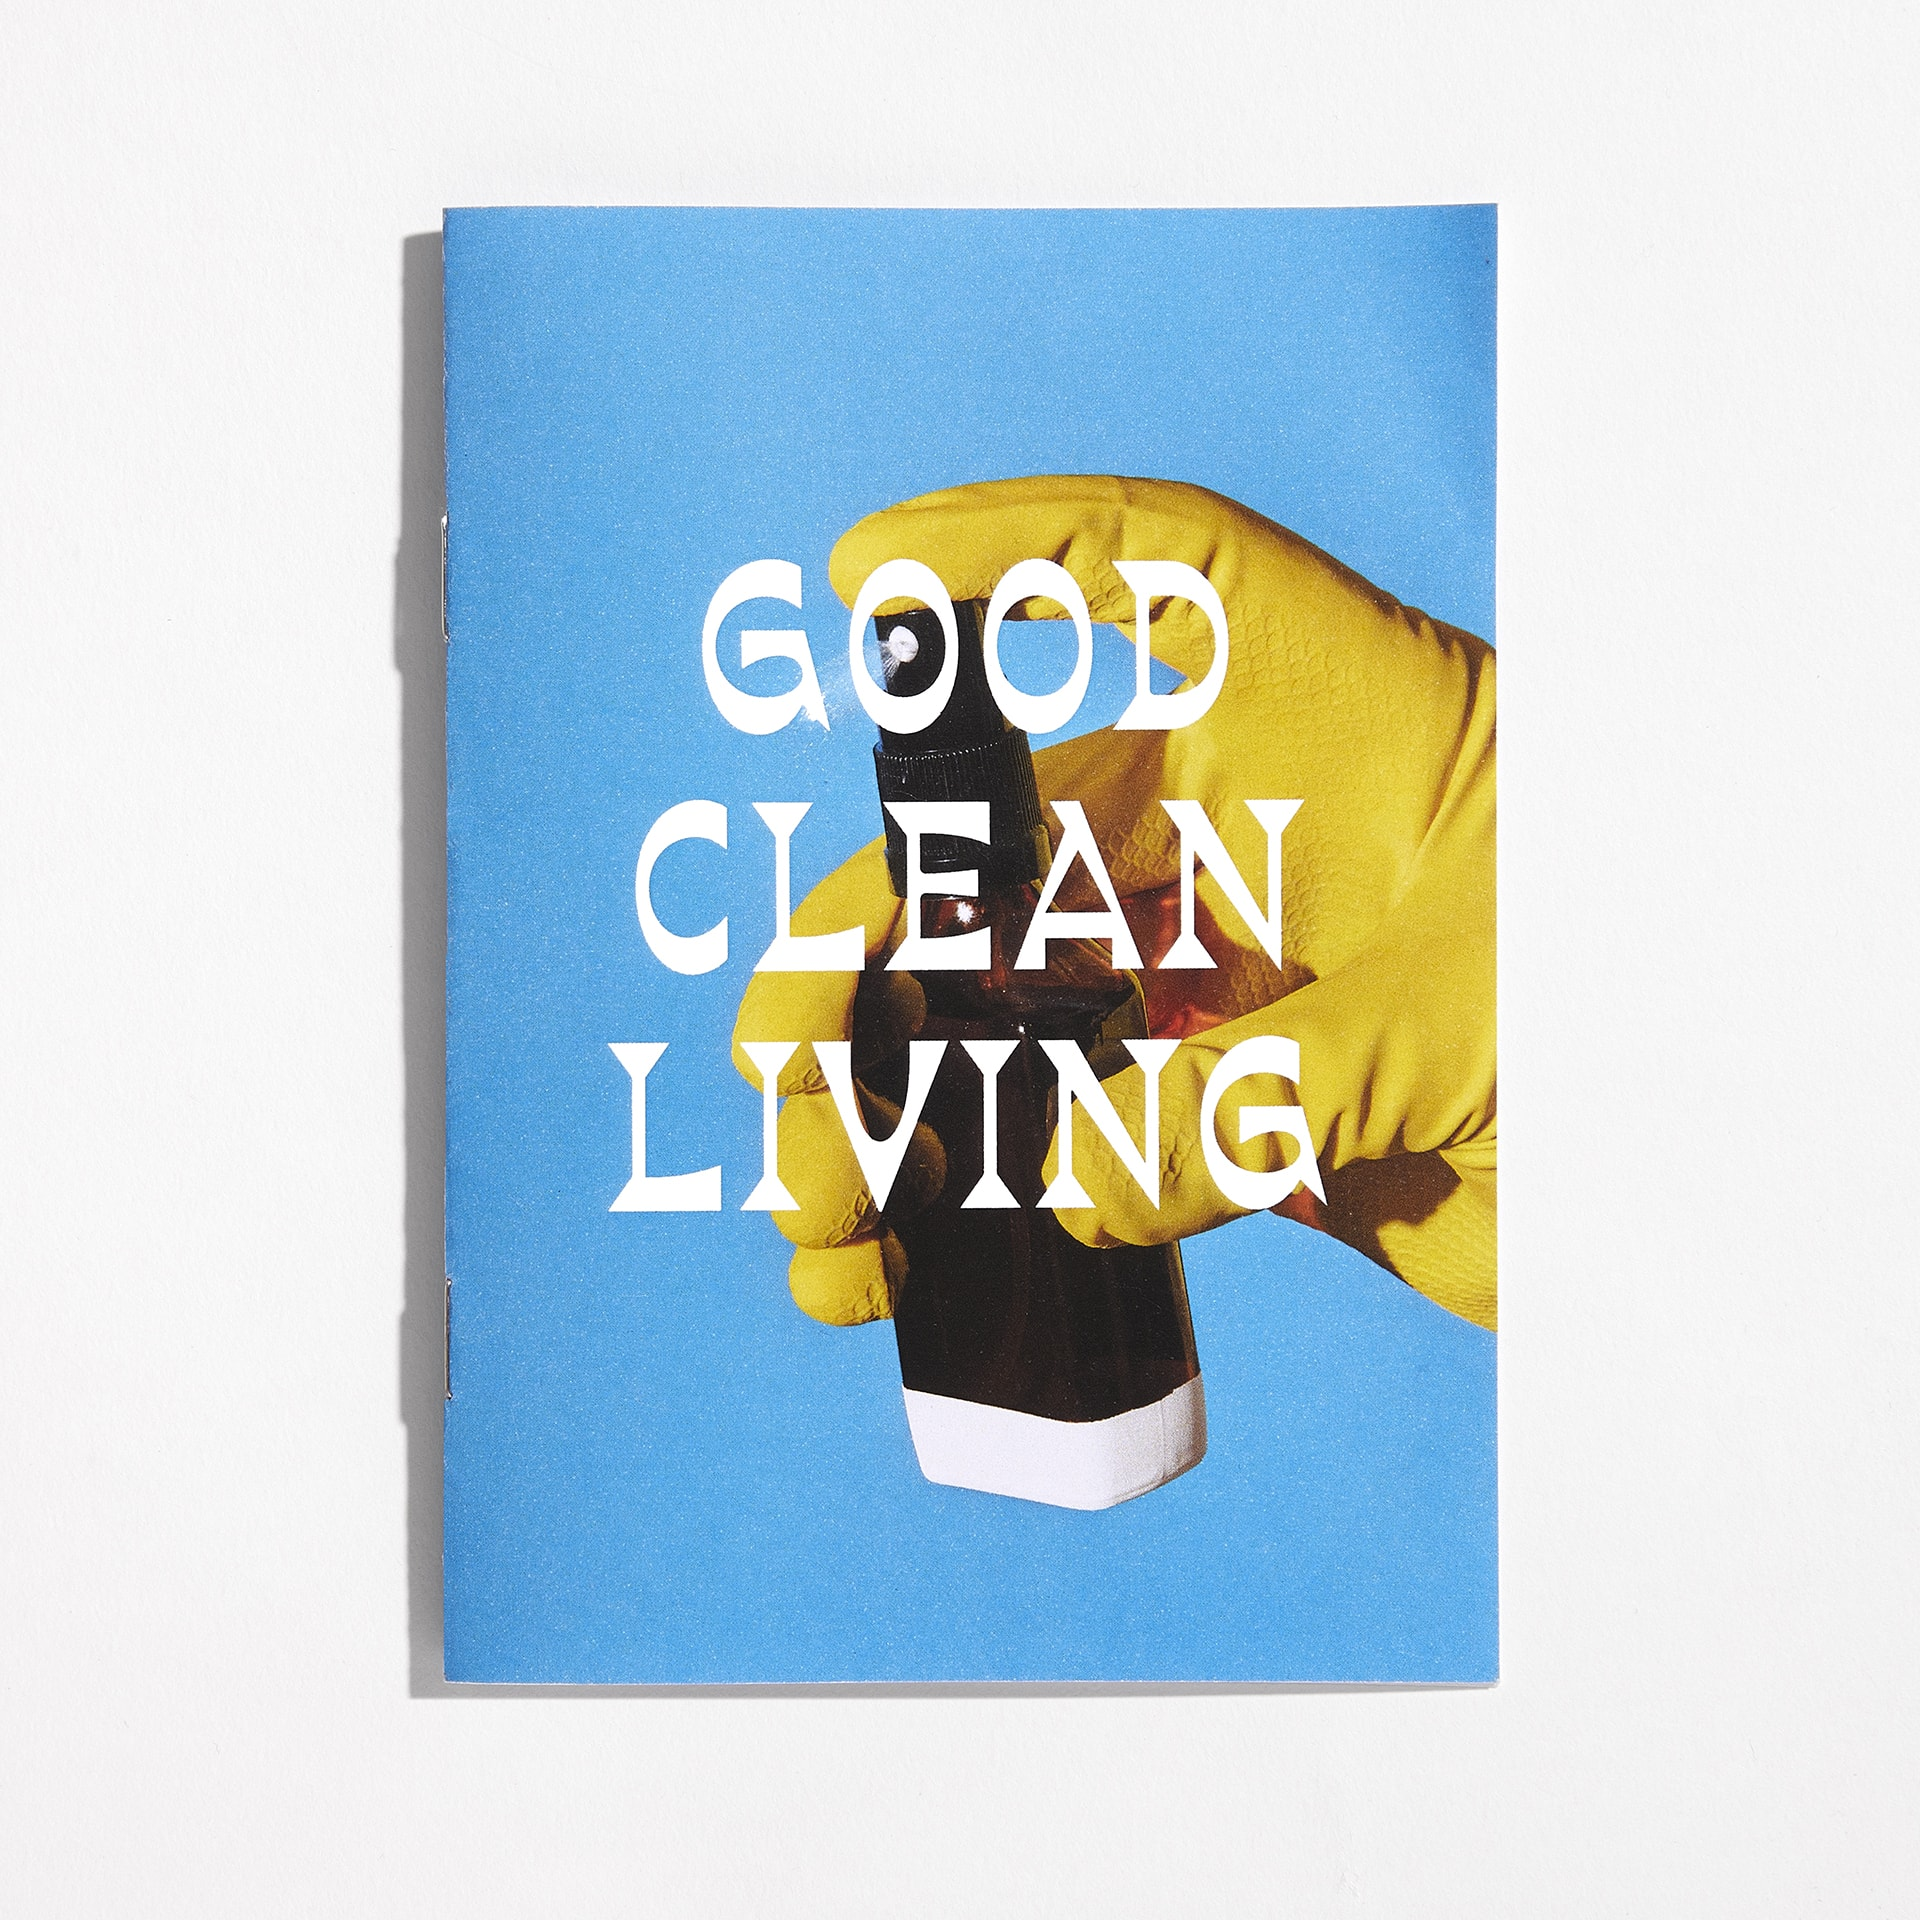 Good Clean Living - Mail order zine and hand sanitiser